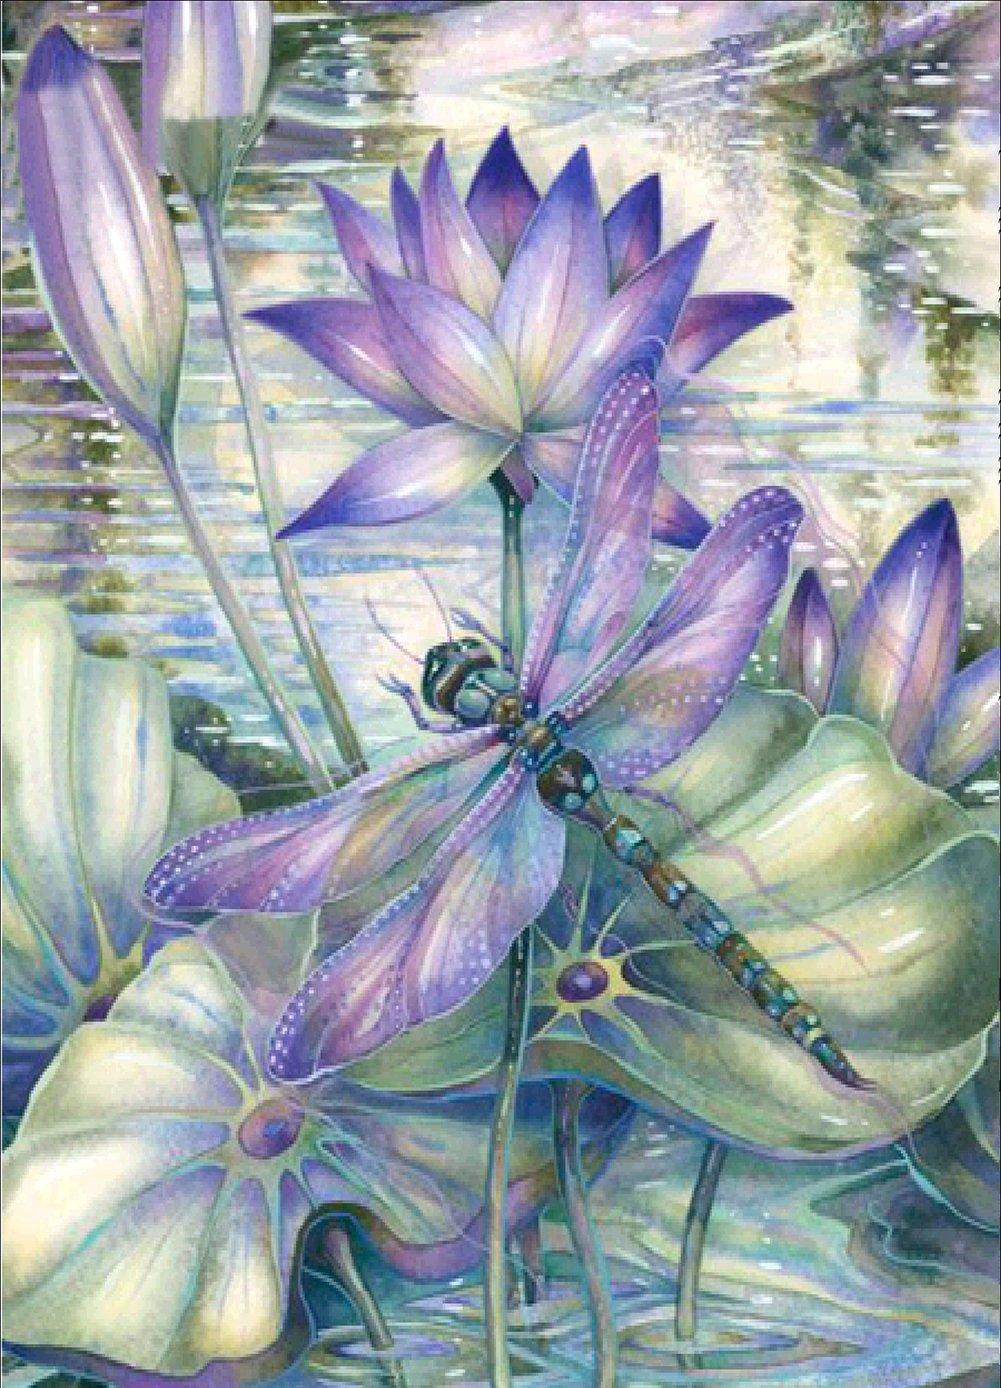 EOBROMD 5D DIY Diamond Painting, Full Drill Embroidery Painting Wall Sticker for Wall Decor - Dragonflies and Lotus Flowers (12 x 16inch)